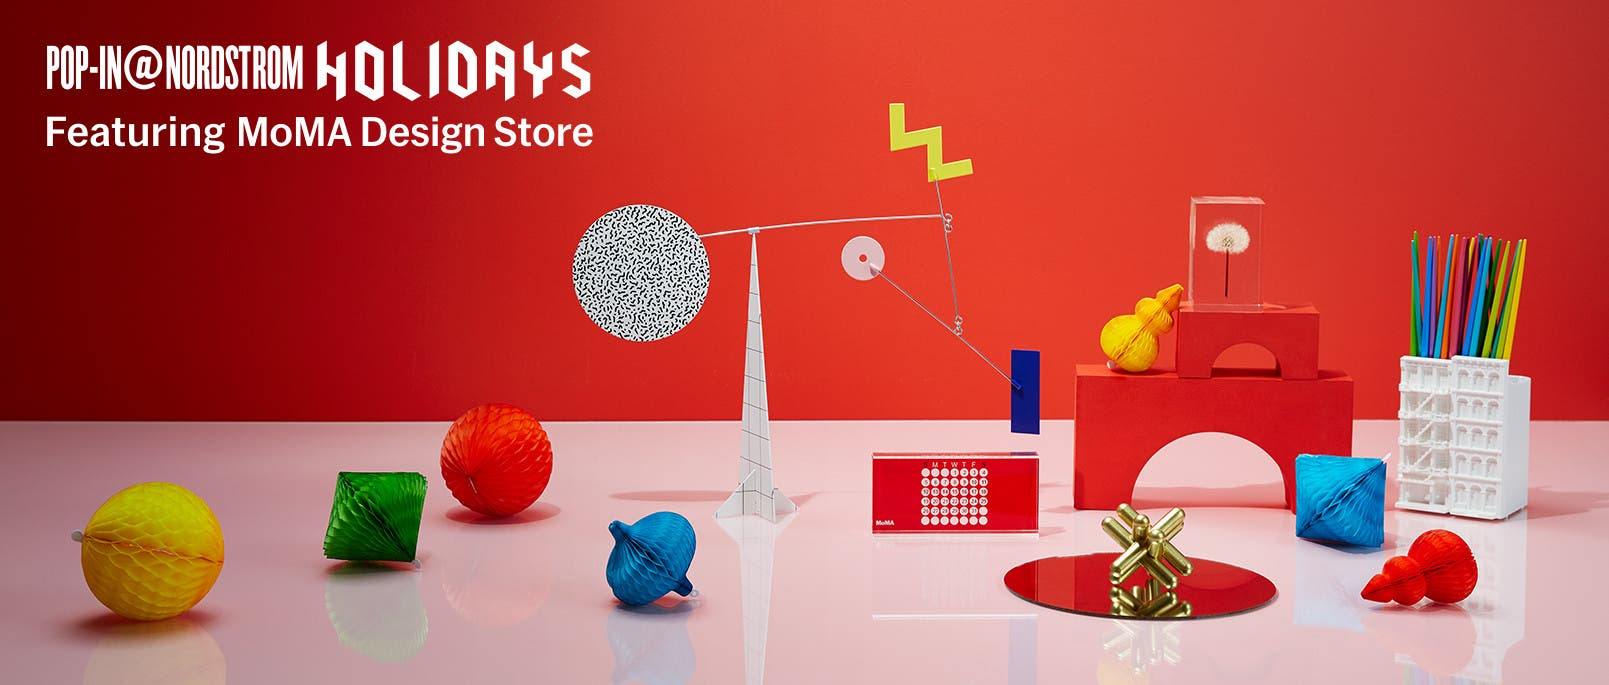 Pop-In@Nordstrom Holidays: featuring MoMA Design Store